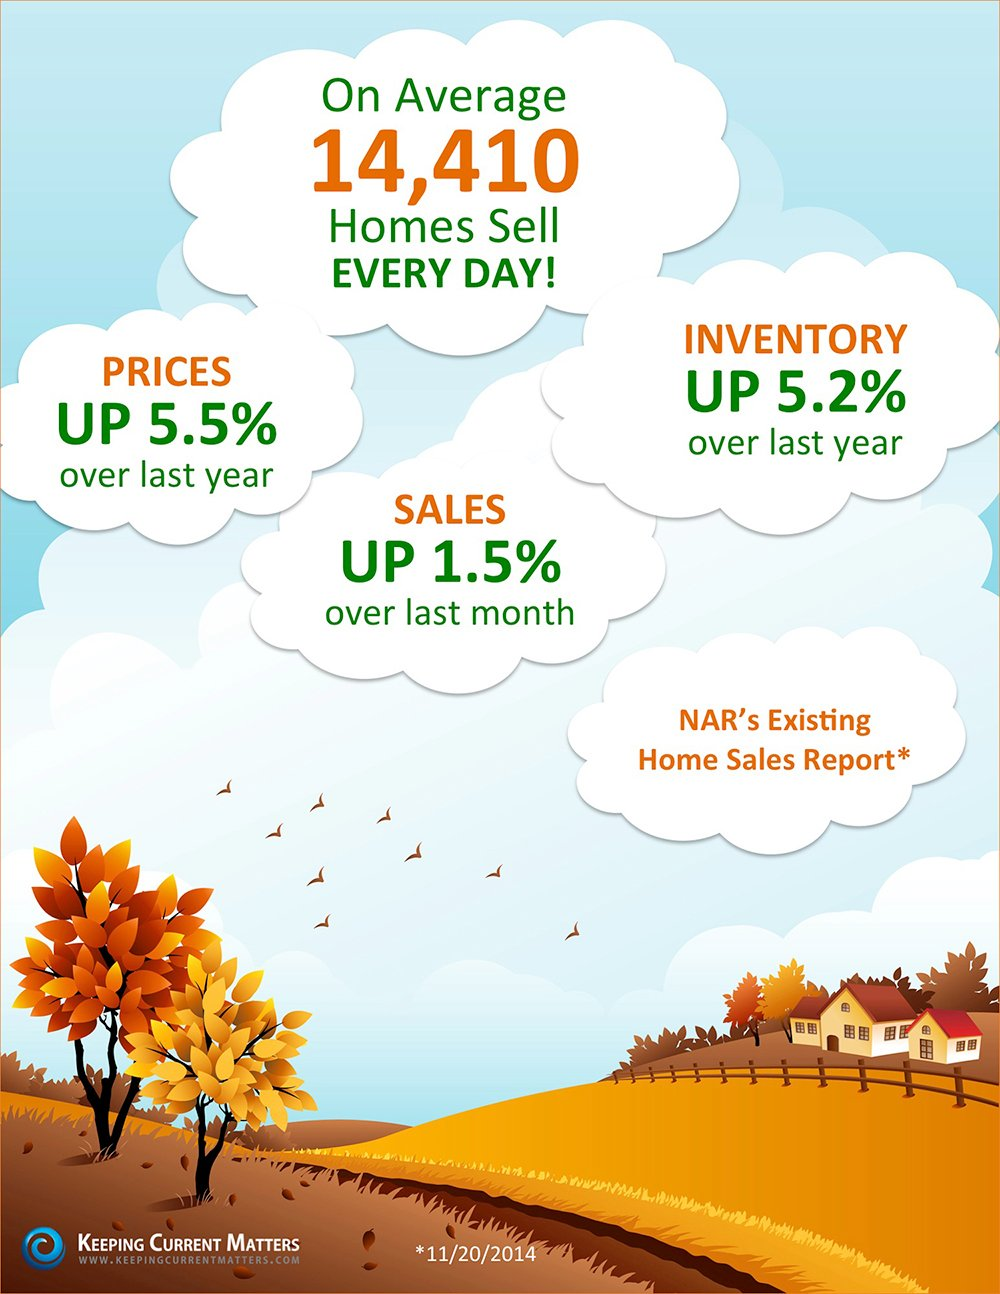 NAR's Existing Home Sales Report [INFOGRAPHIC] | Keeping Current Matters